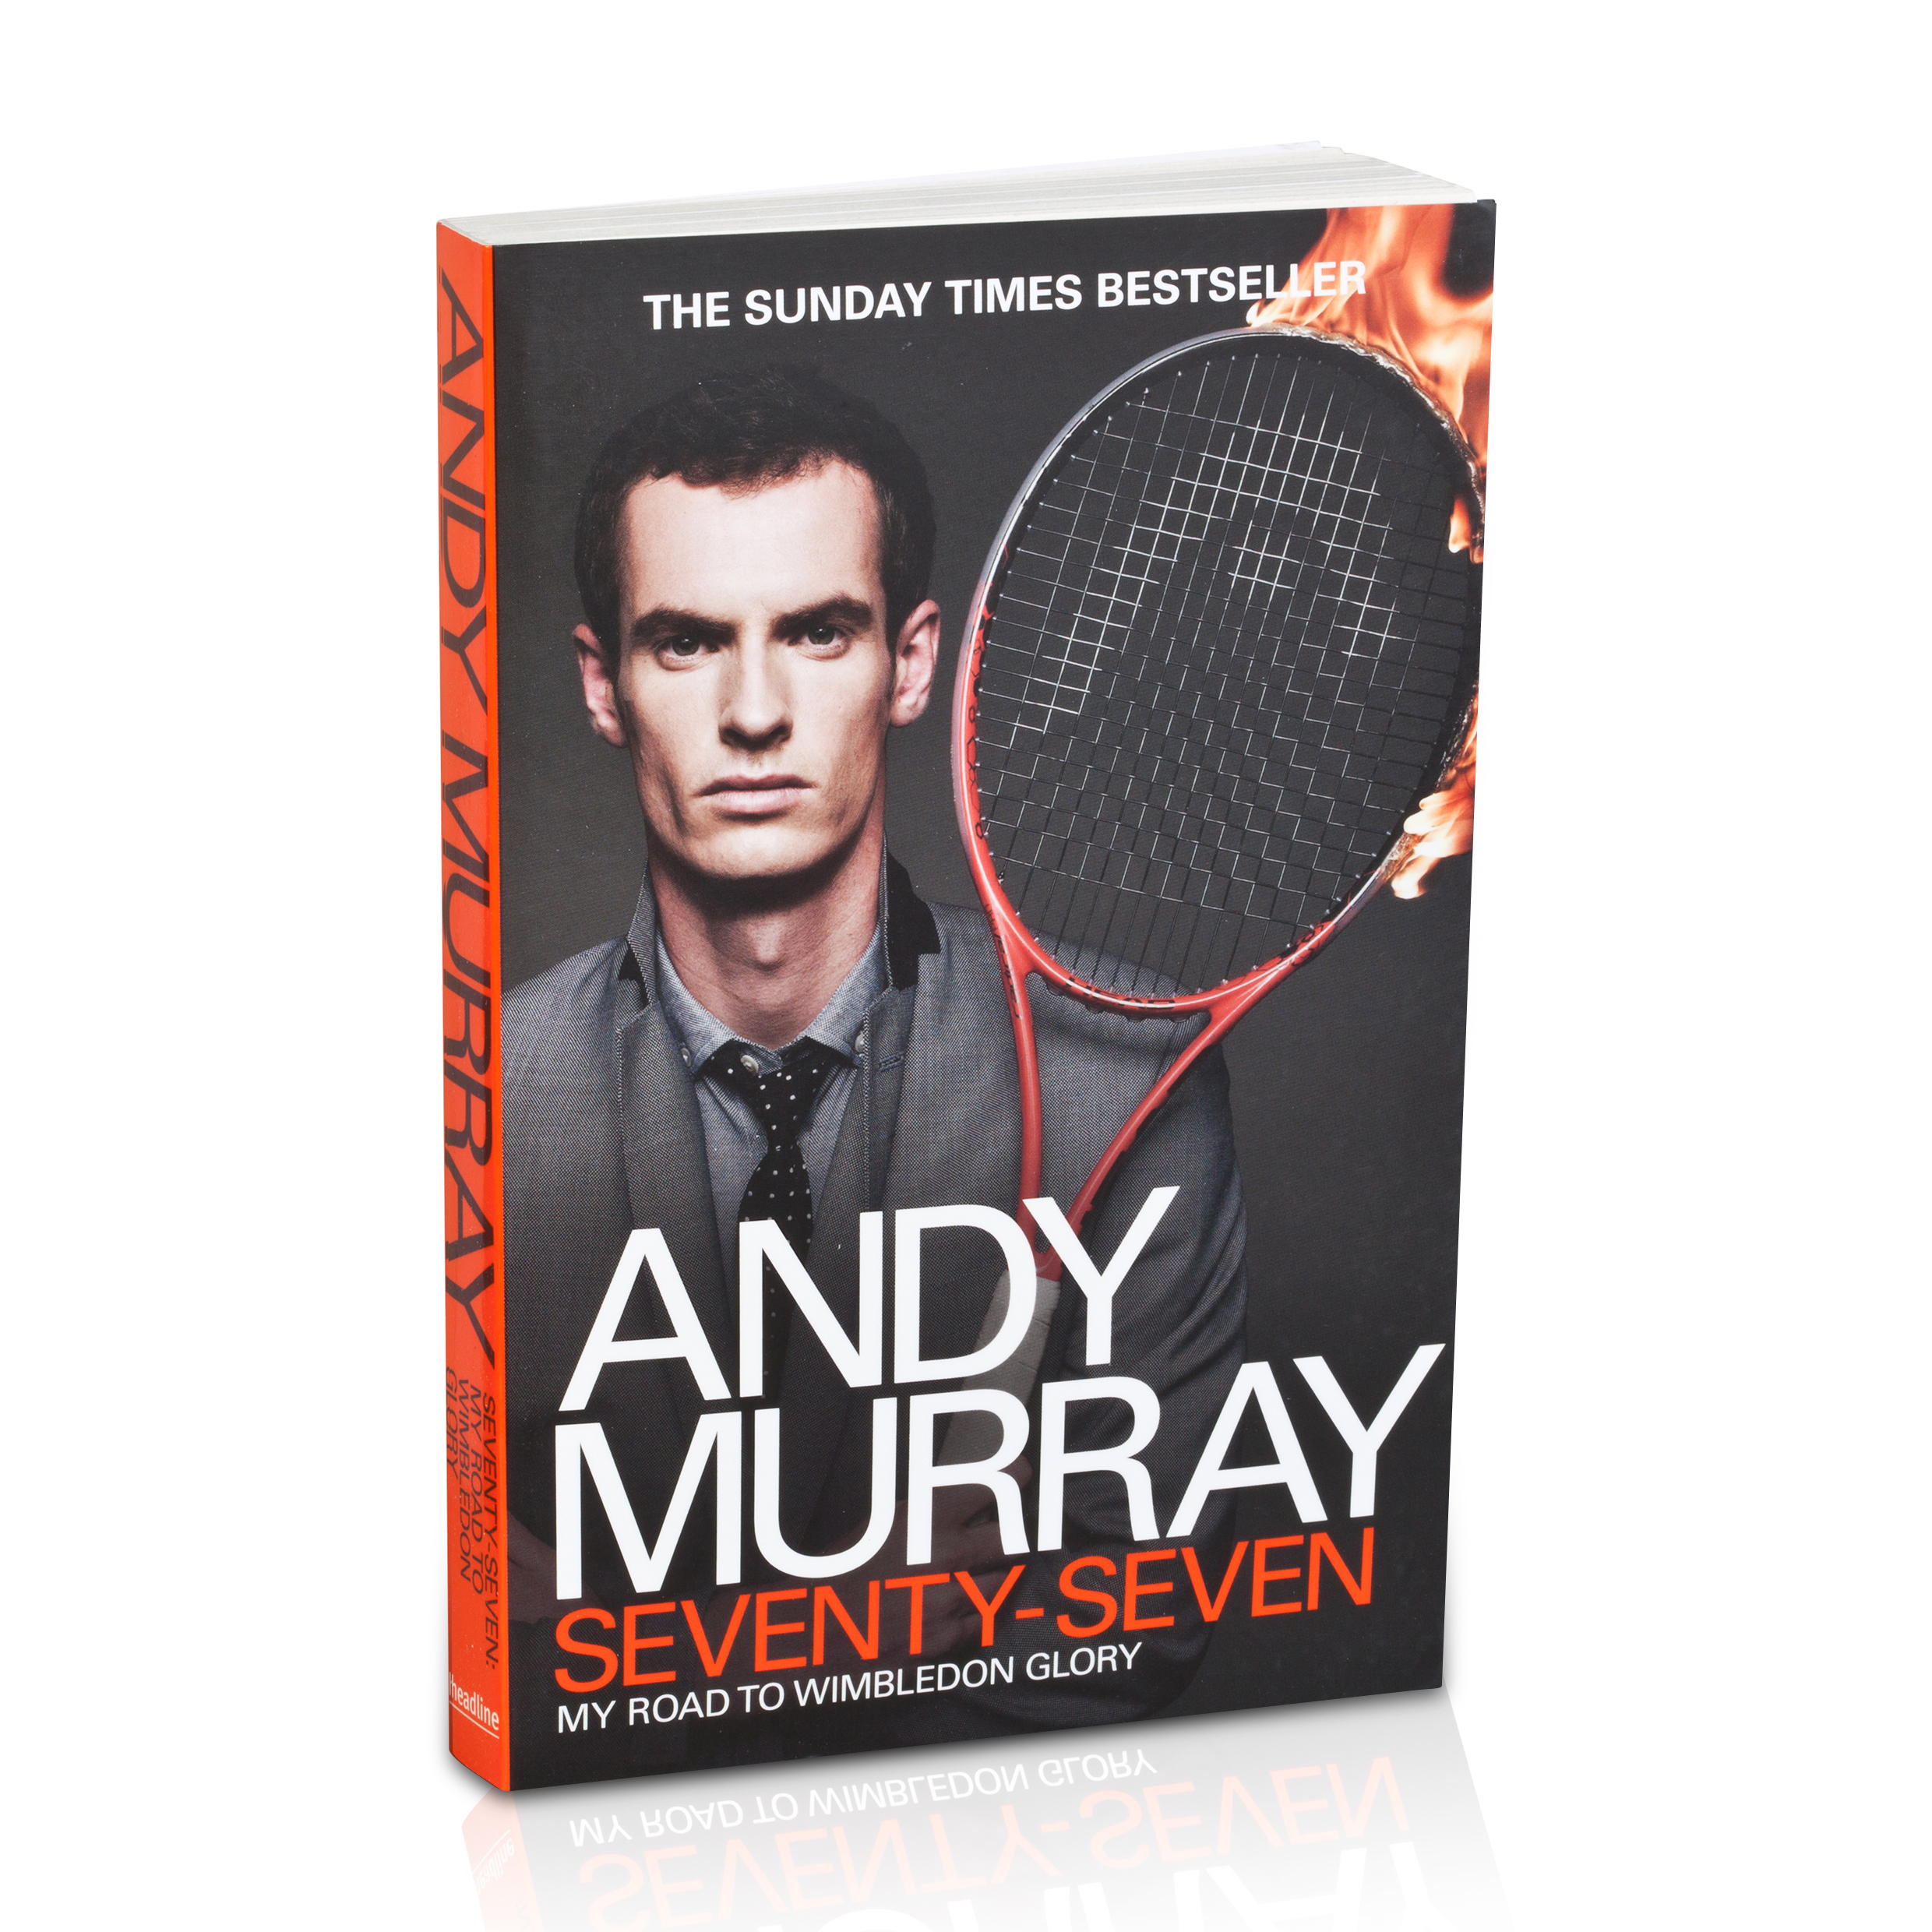 Wimbledon Andy Murray: Seventy-Seven My Road To Wimbledon